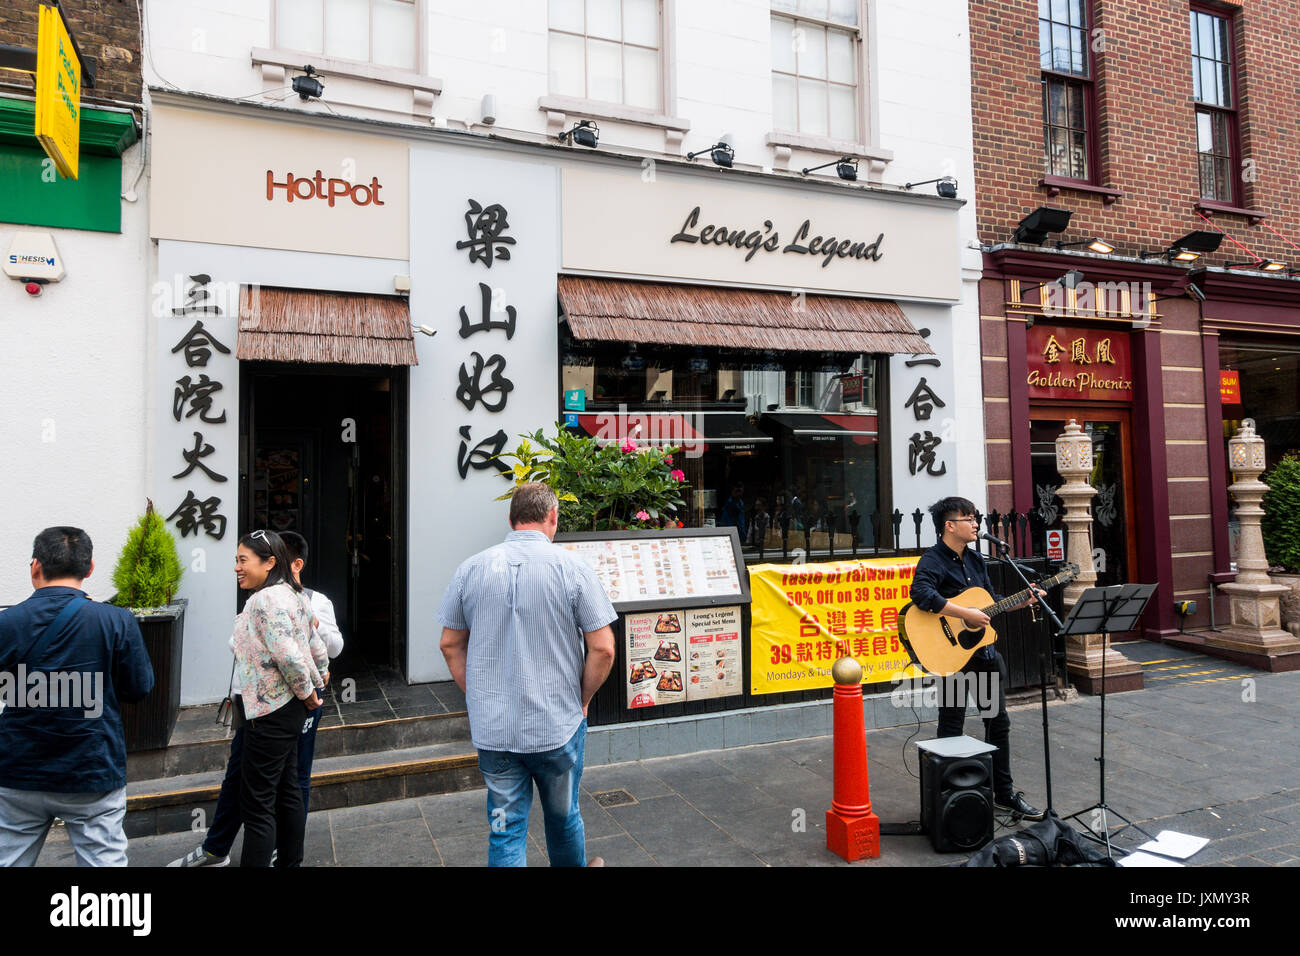 Chinese guitar vocalist outside leong's legend, chinese restaurant, chinatown, London - Stock Image